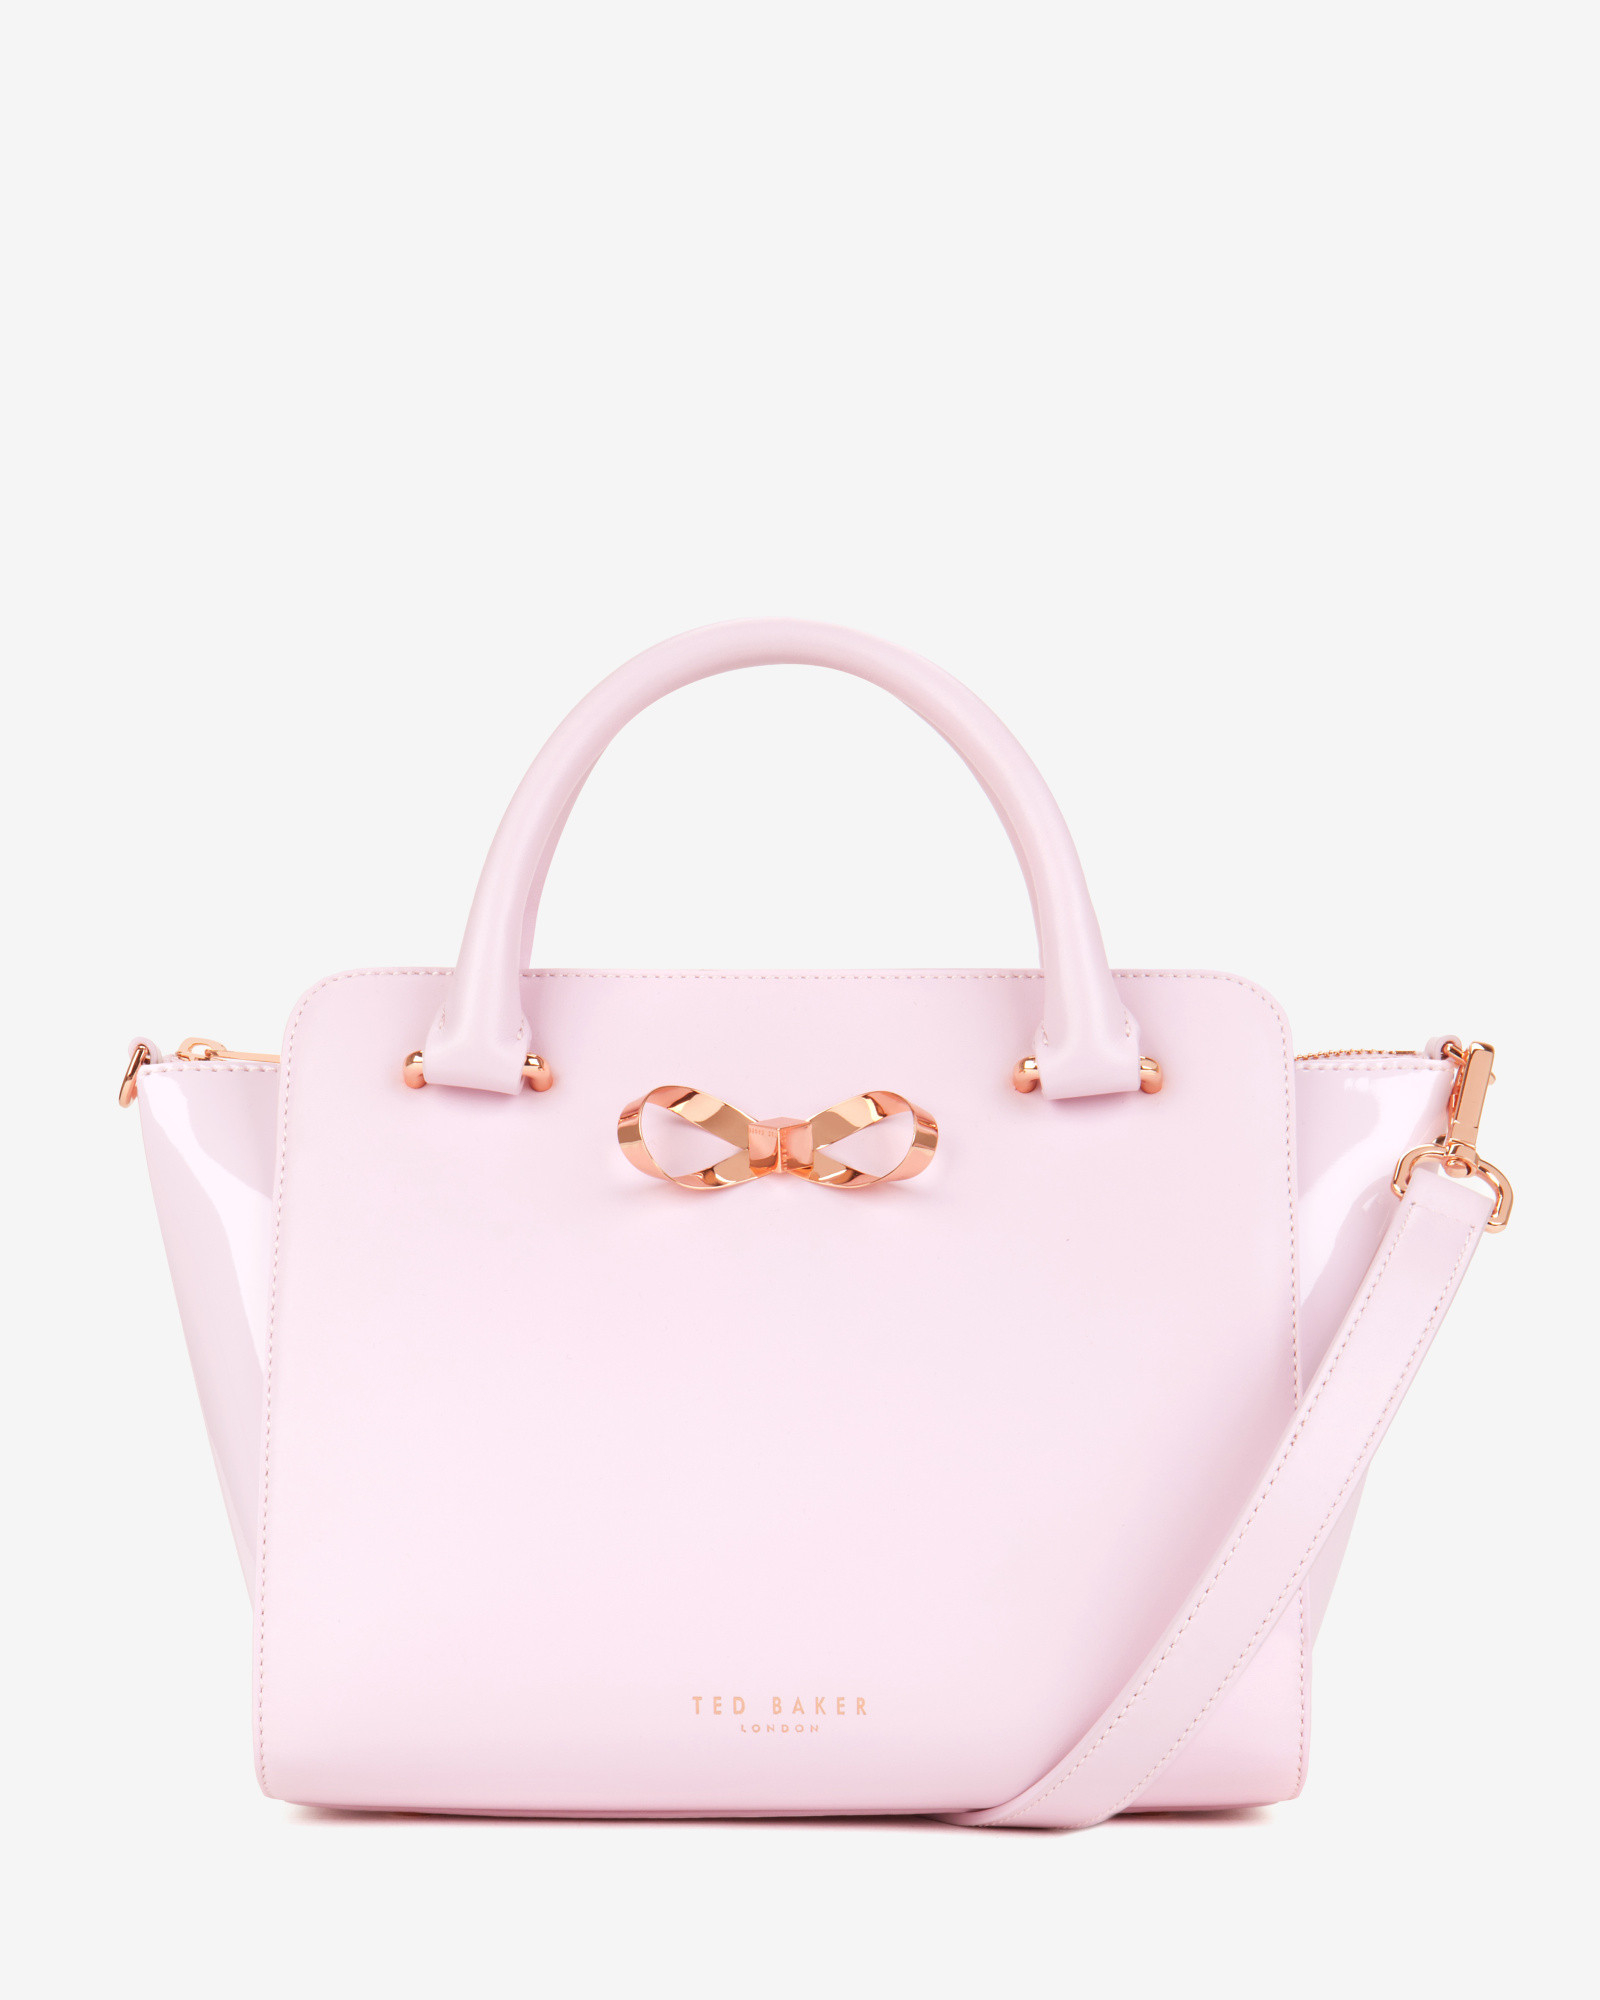 ad6e6935d Ted Baker Pink Backpack. Ted Baker Women s Beau Collection Vanity ...